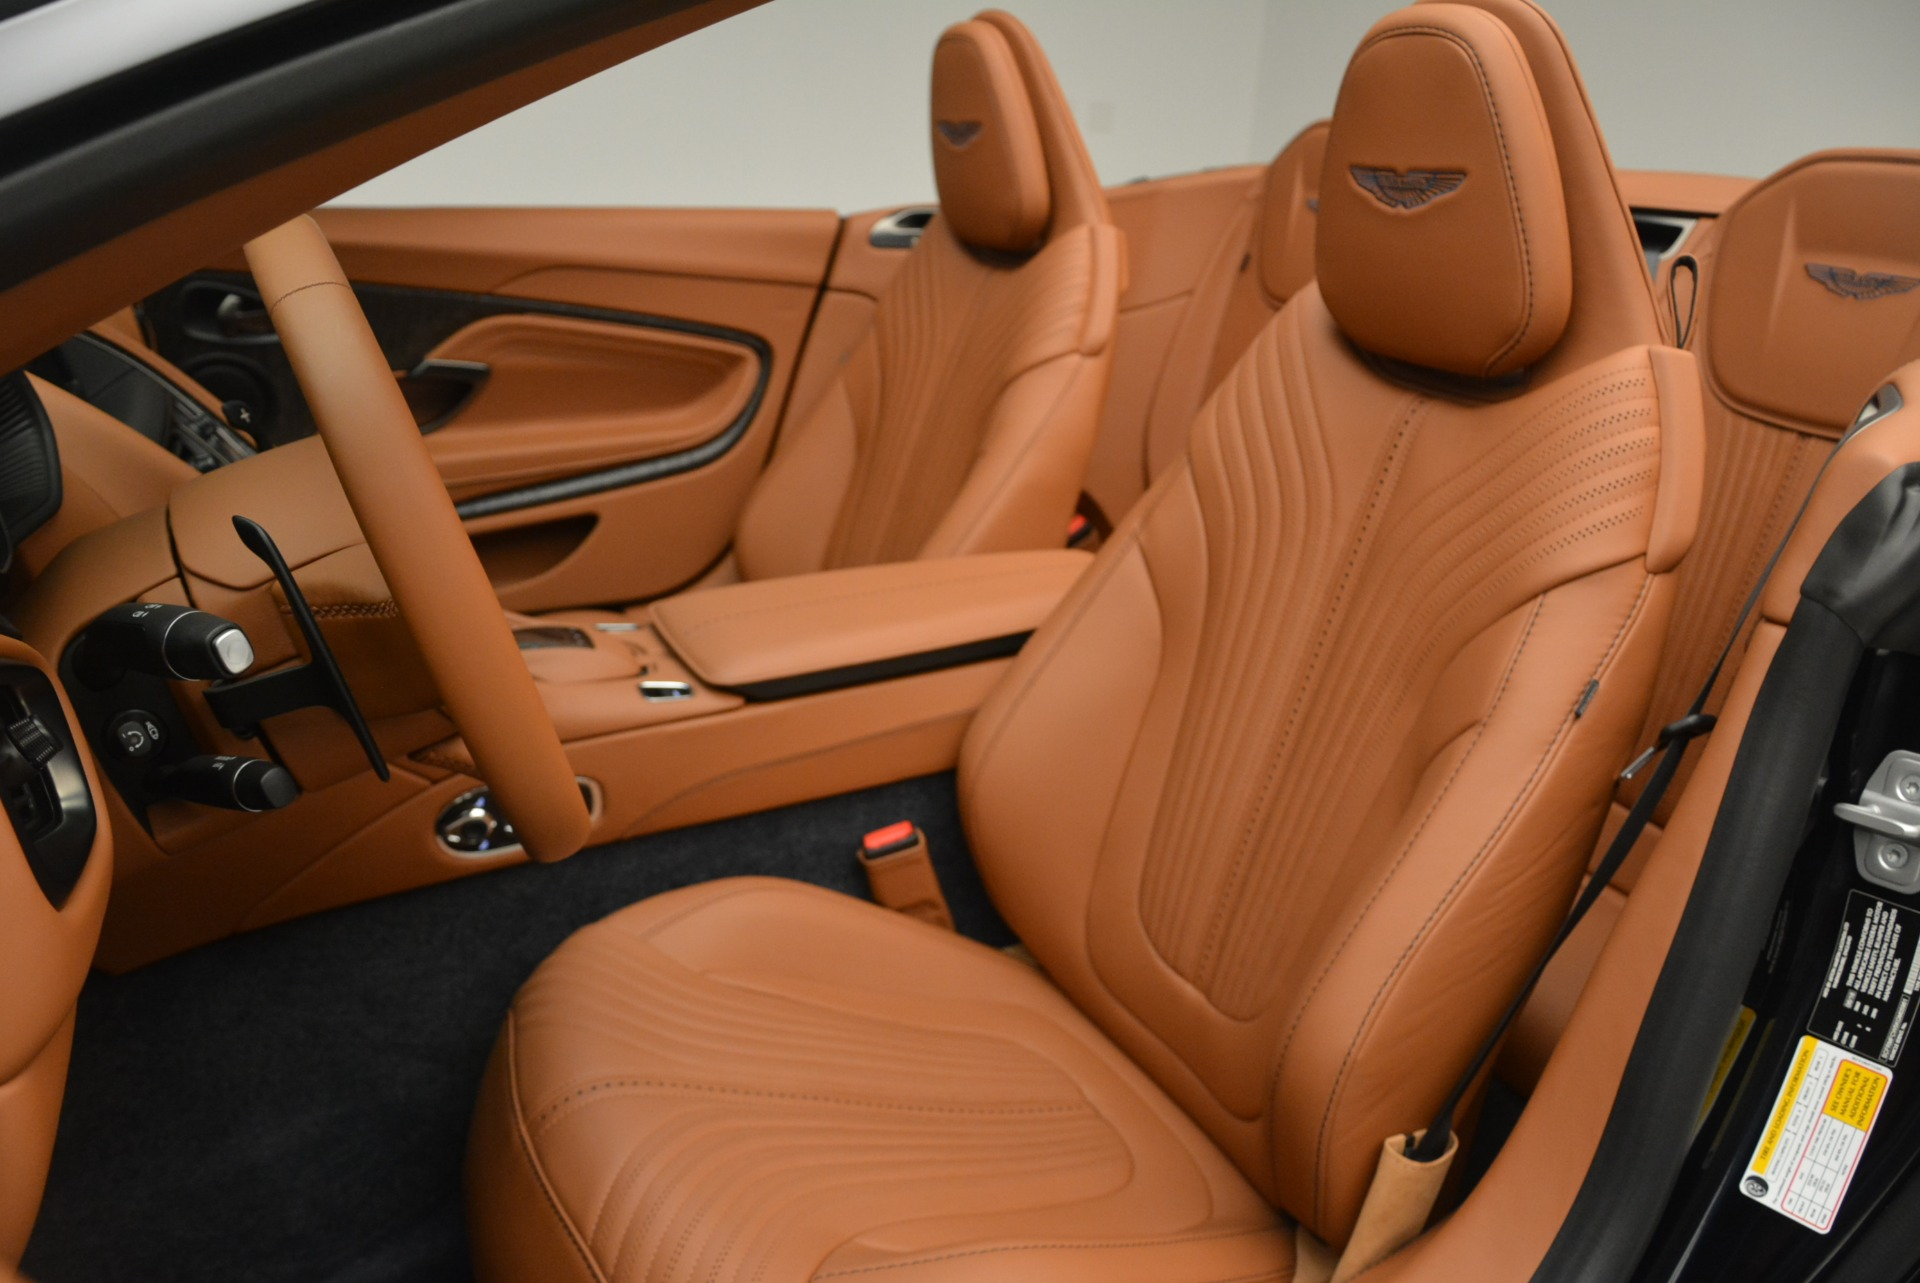 New 2019 Aston Martin DB11 Volante Volante For Sale In Greenwich, CT 2450_p22